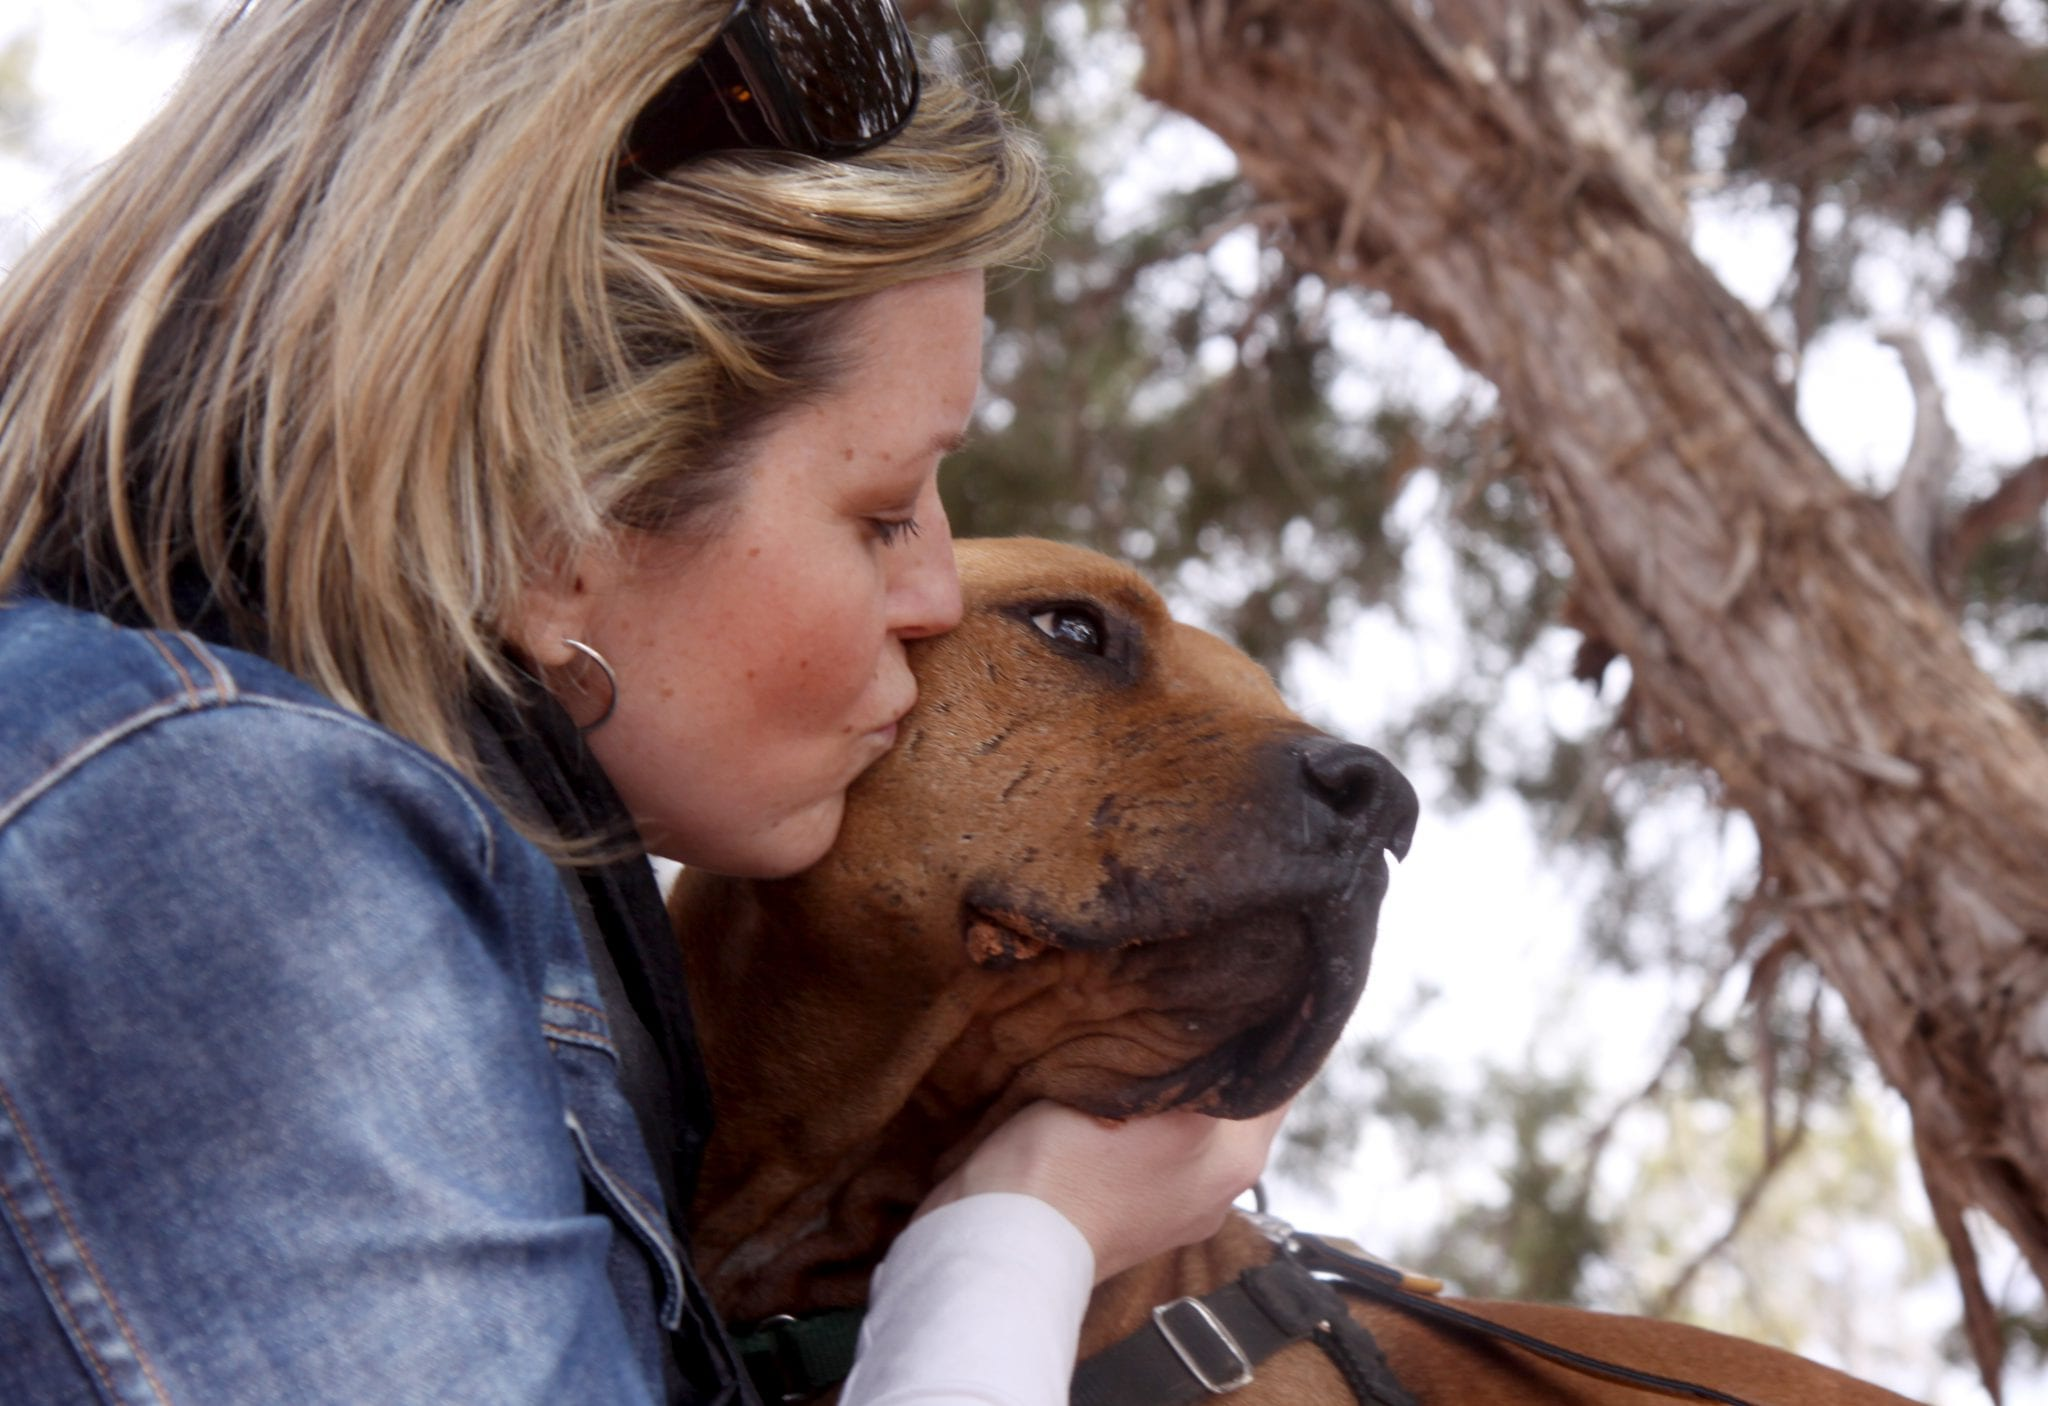 Me and Lucas, former Michael Vick (ugh!) fighting dog turned Vicktory Dog, Best Friends Magazine, Best Friends Animal Society: Kanab, Utah, 2009.